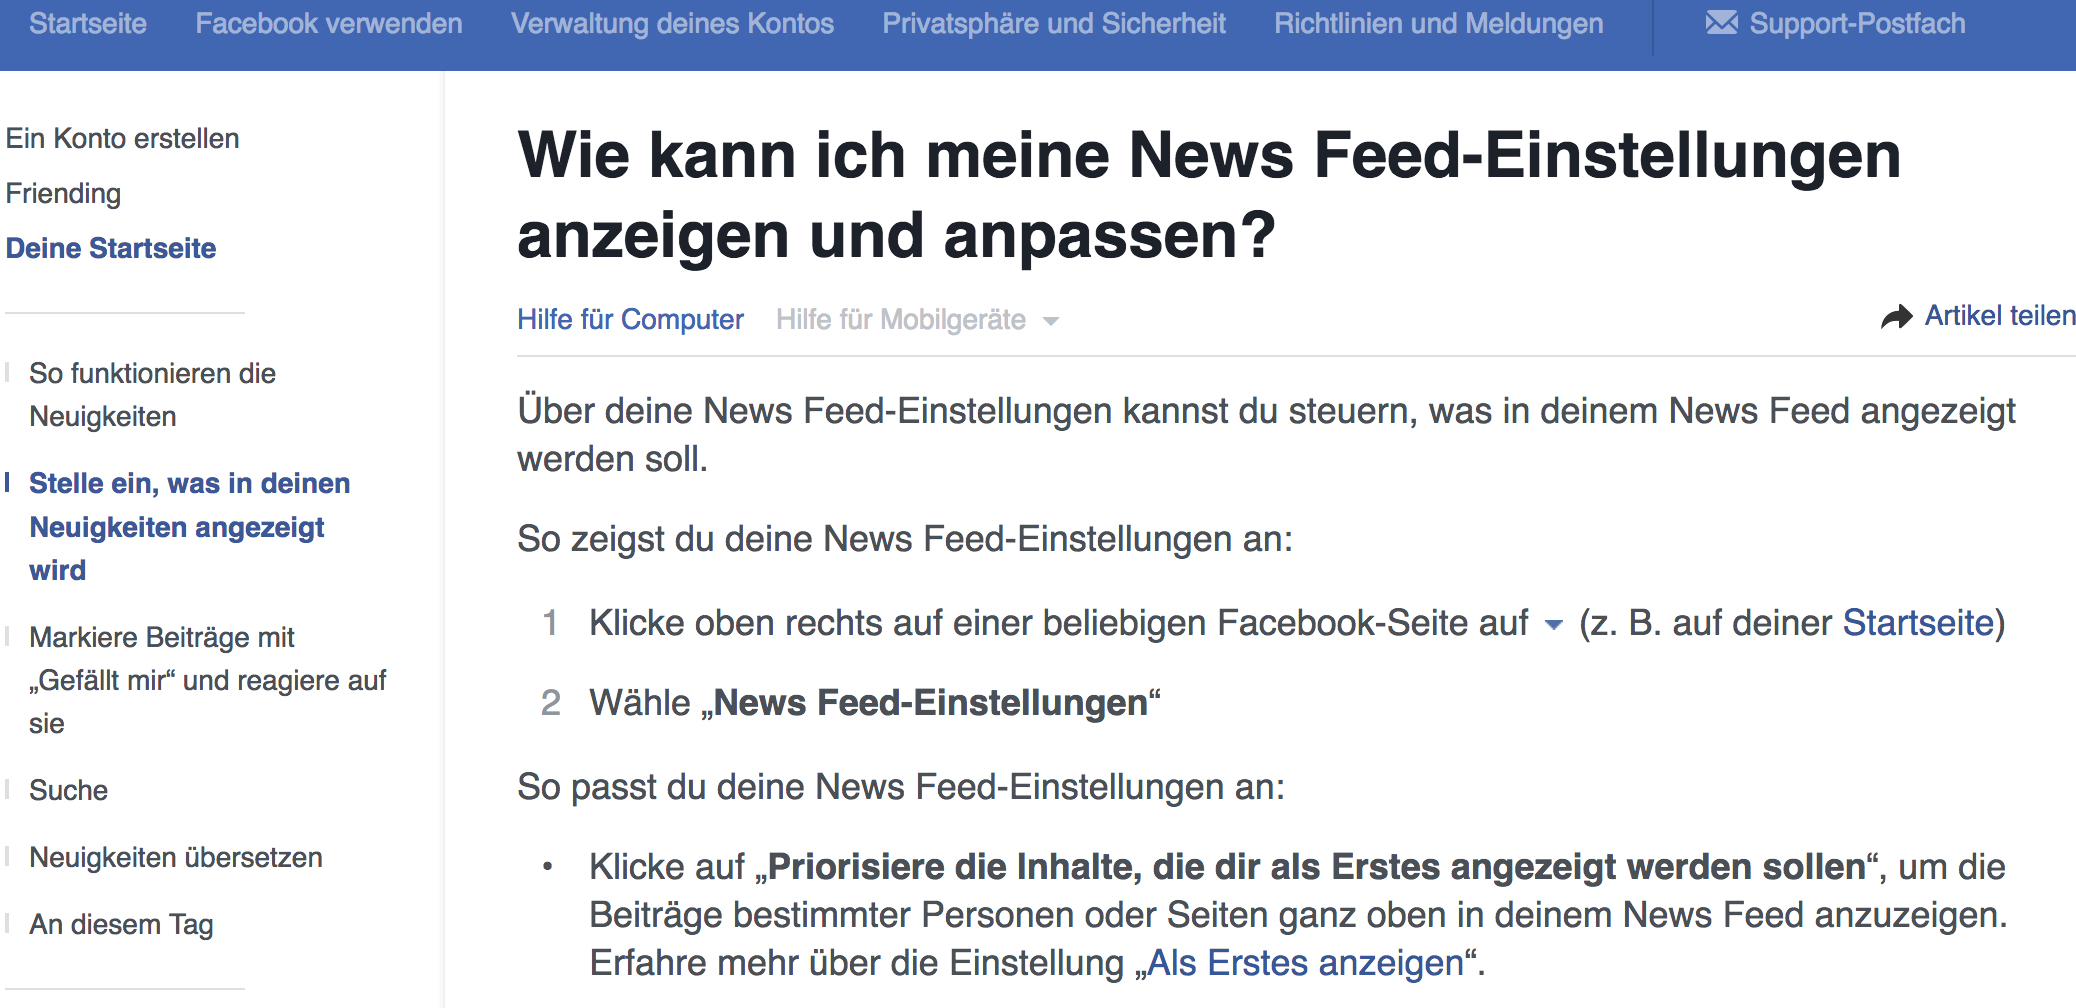 NewsfeedEinstellungen